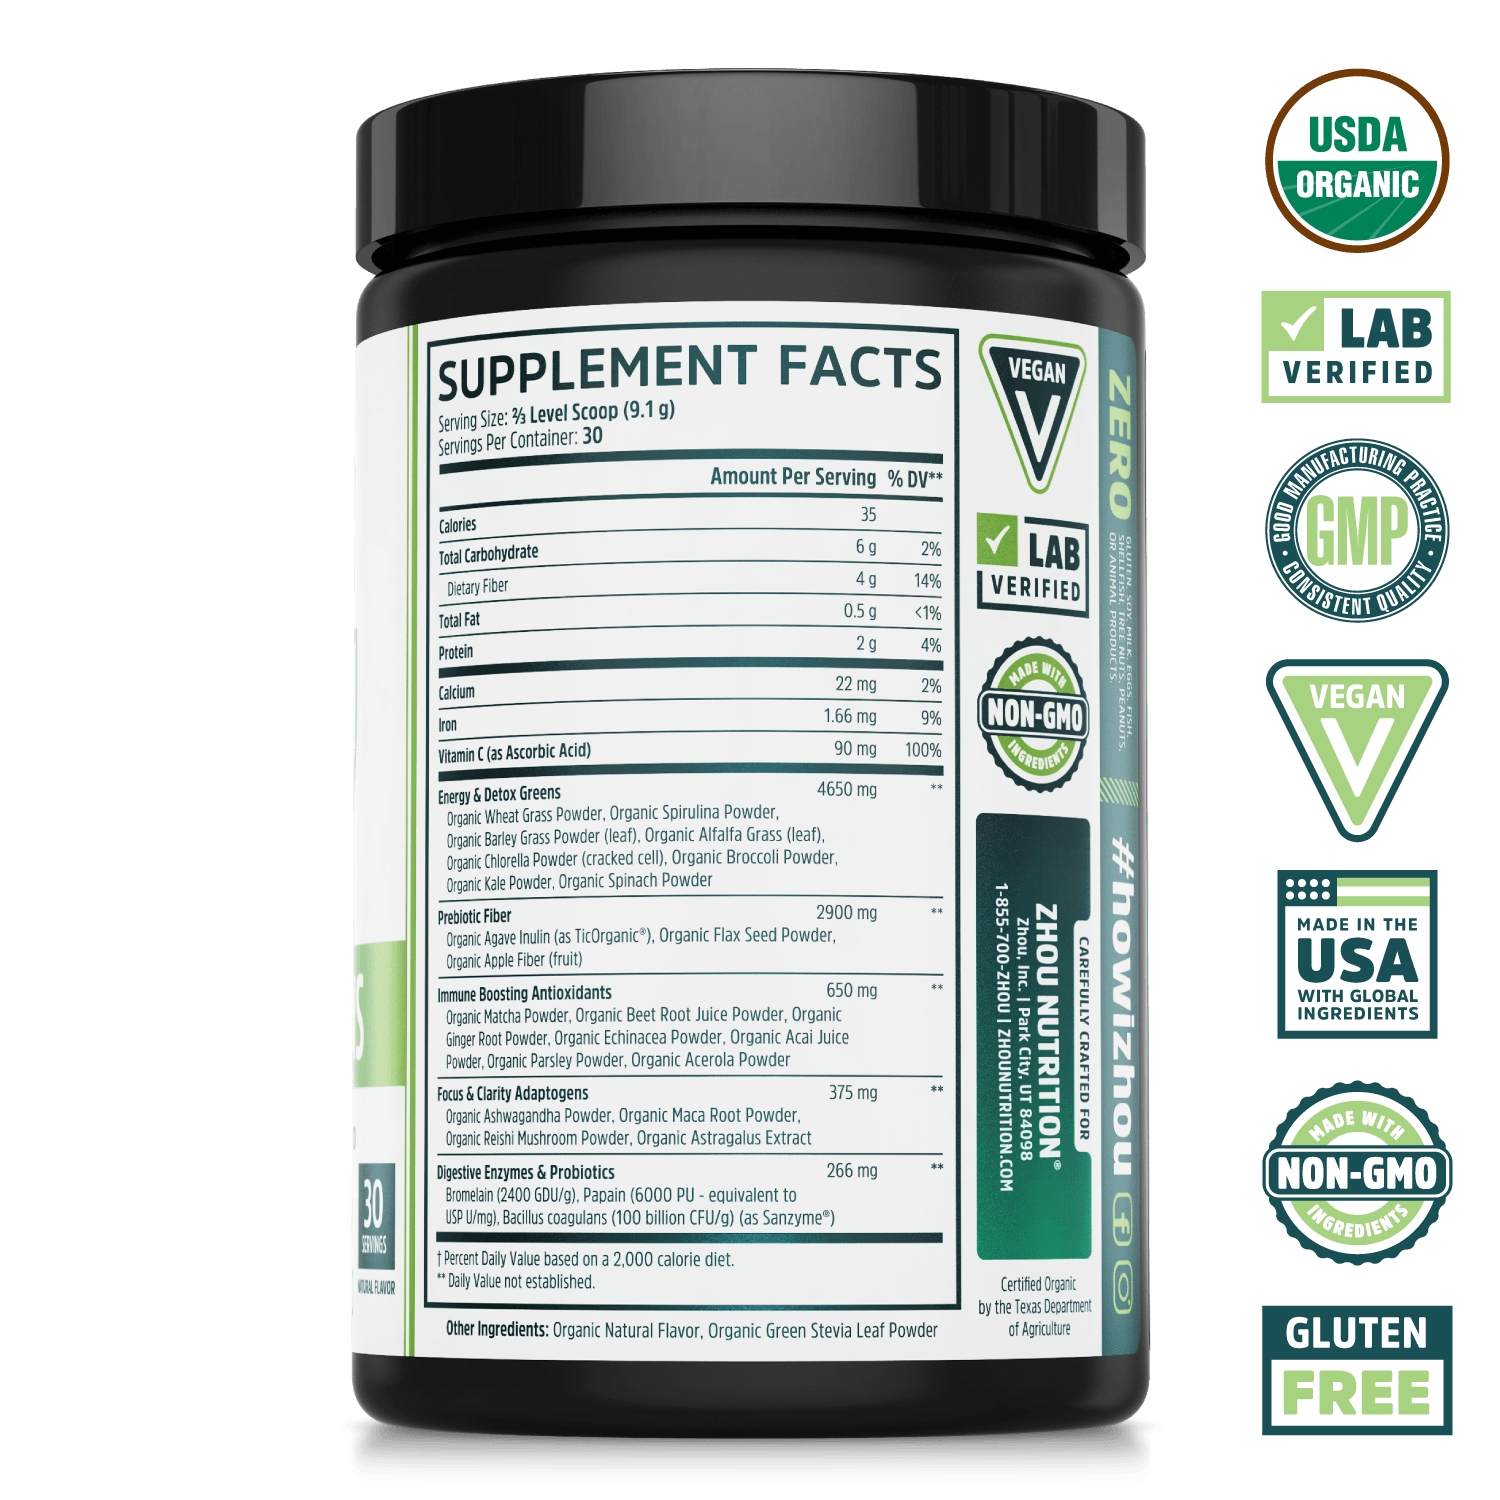 Zhou Nutrition Deep Greens Organic Superfood Powder for Daily Detox, Energy & Gut Health. Bottle side. USDA organic, lab verified, good manufacturing practices, vegan, made in the USA with global ingredients, made with non-GMO ingredients, gluten free.